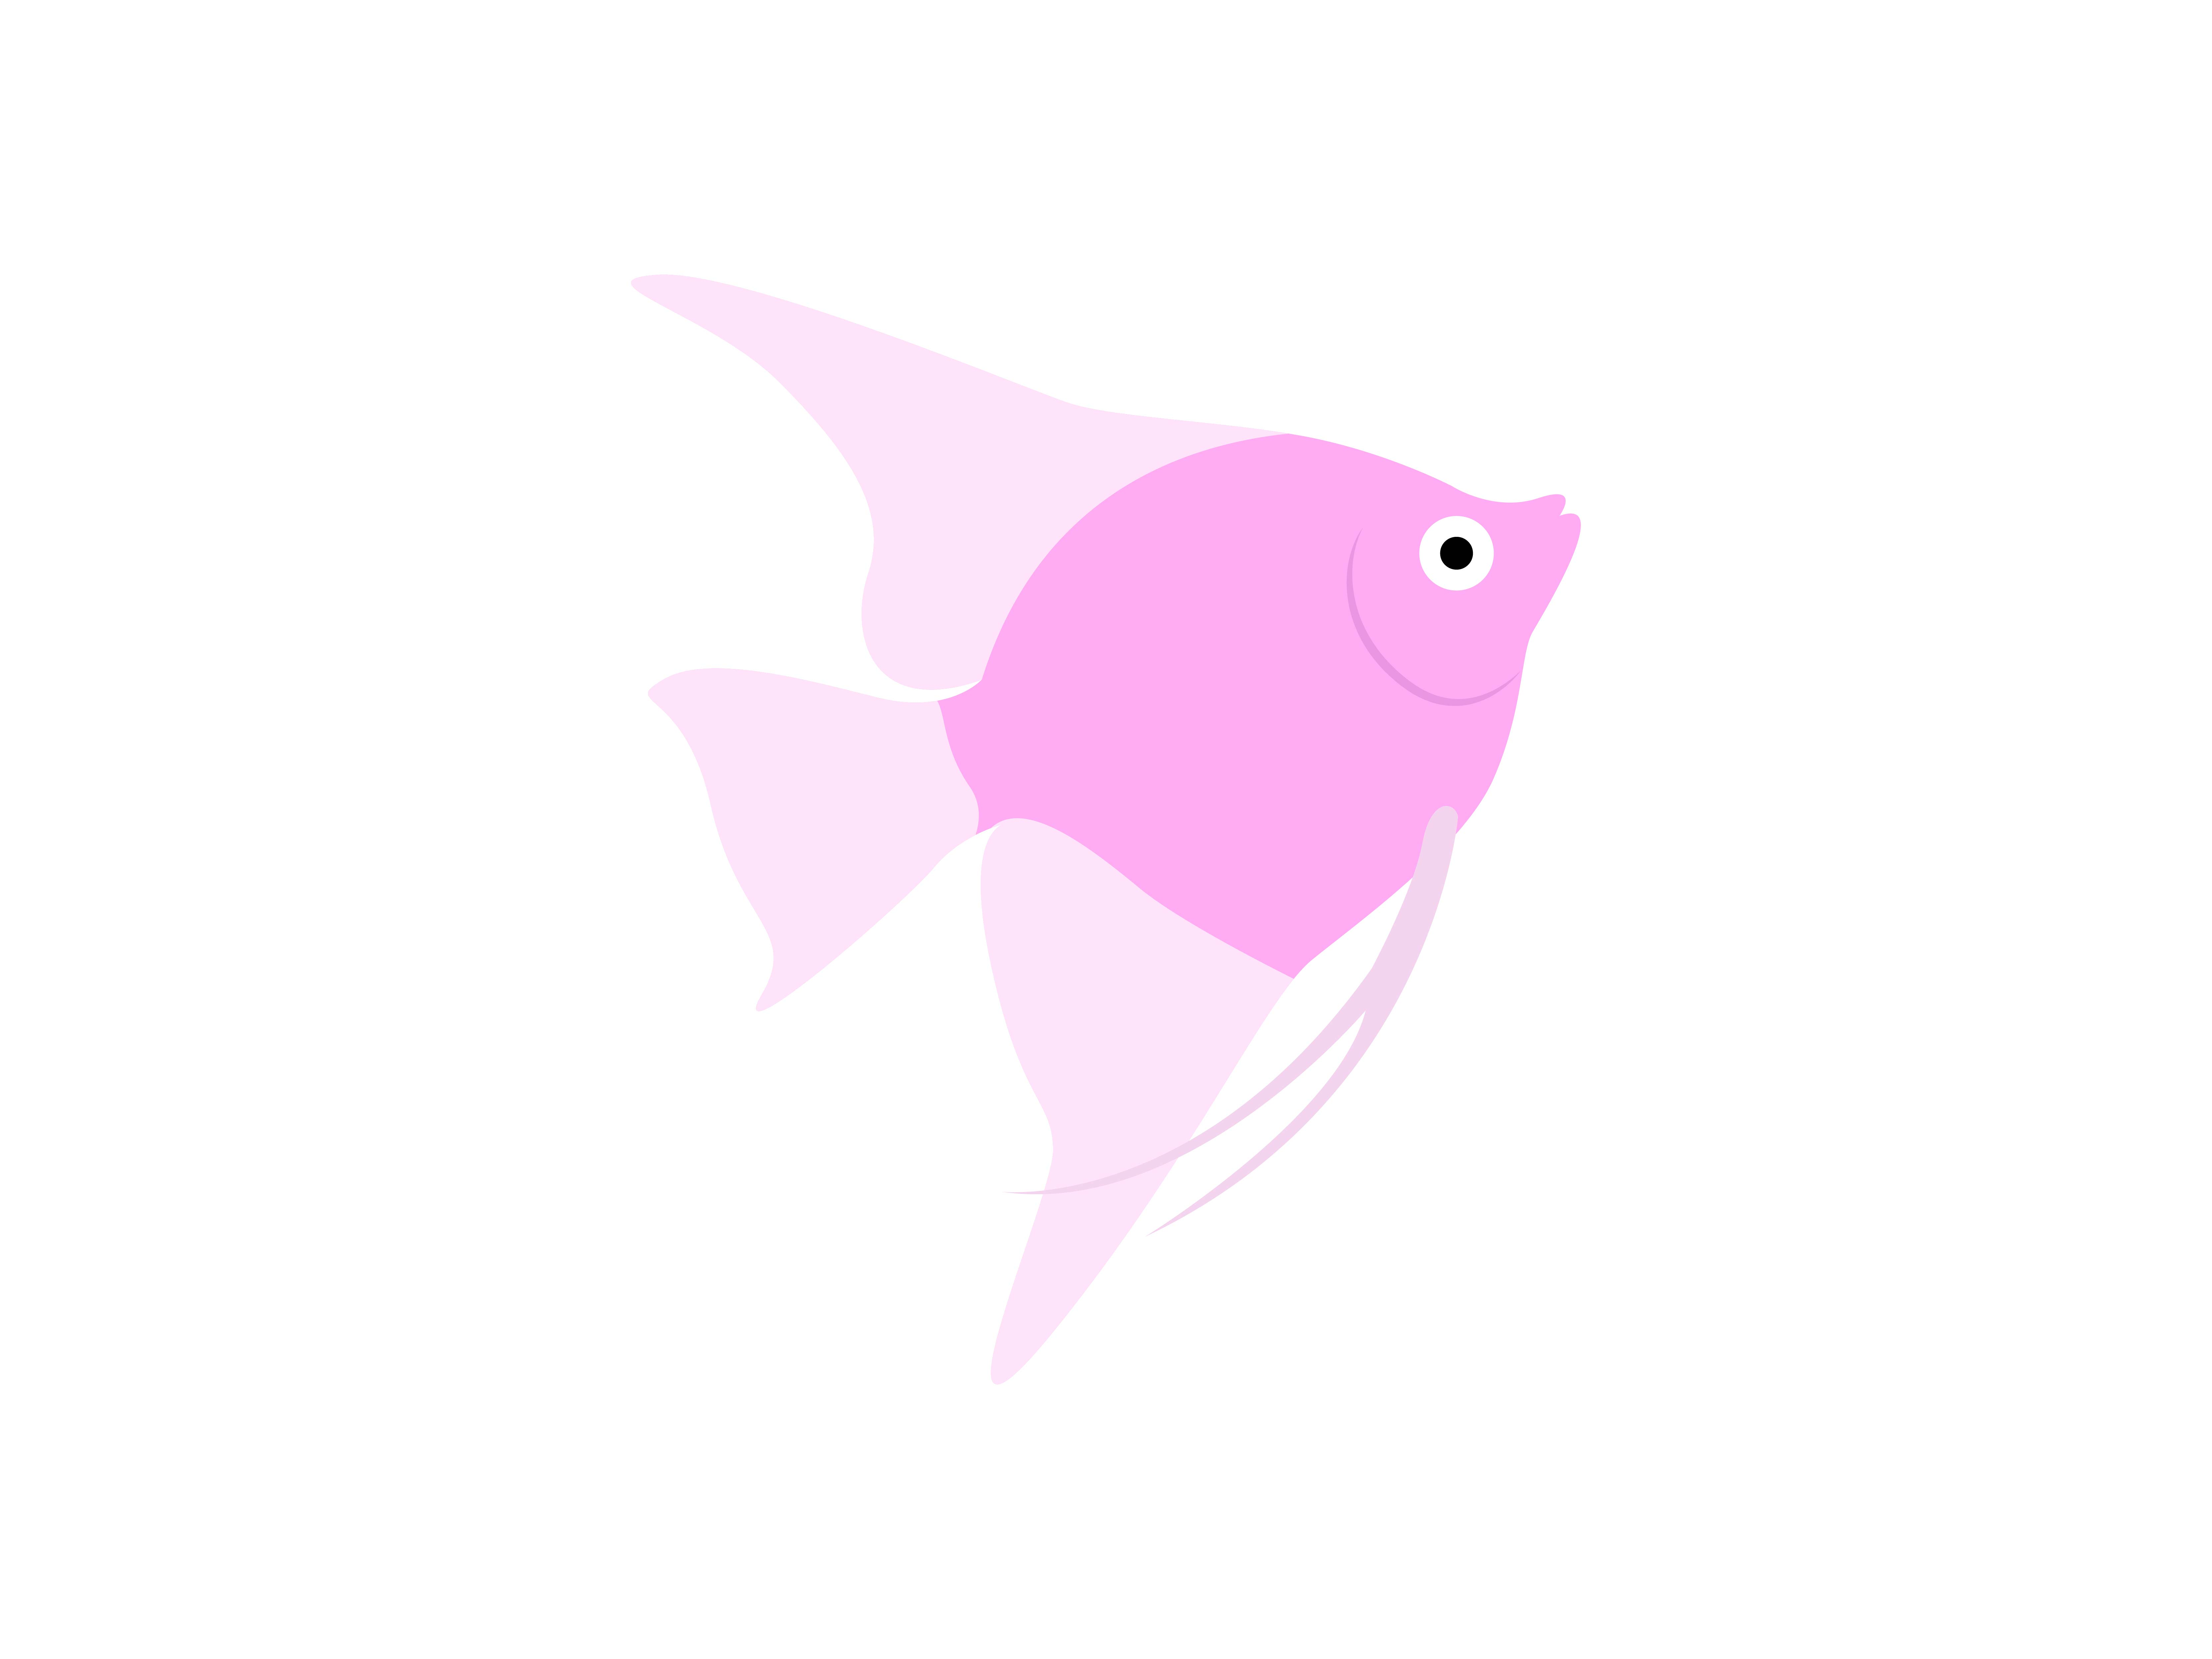 Download Free Manfish Animal Graphic By Archshape Creative Fabrica for Cricut Explore, Silhouette and other cutting machines.